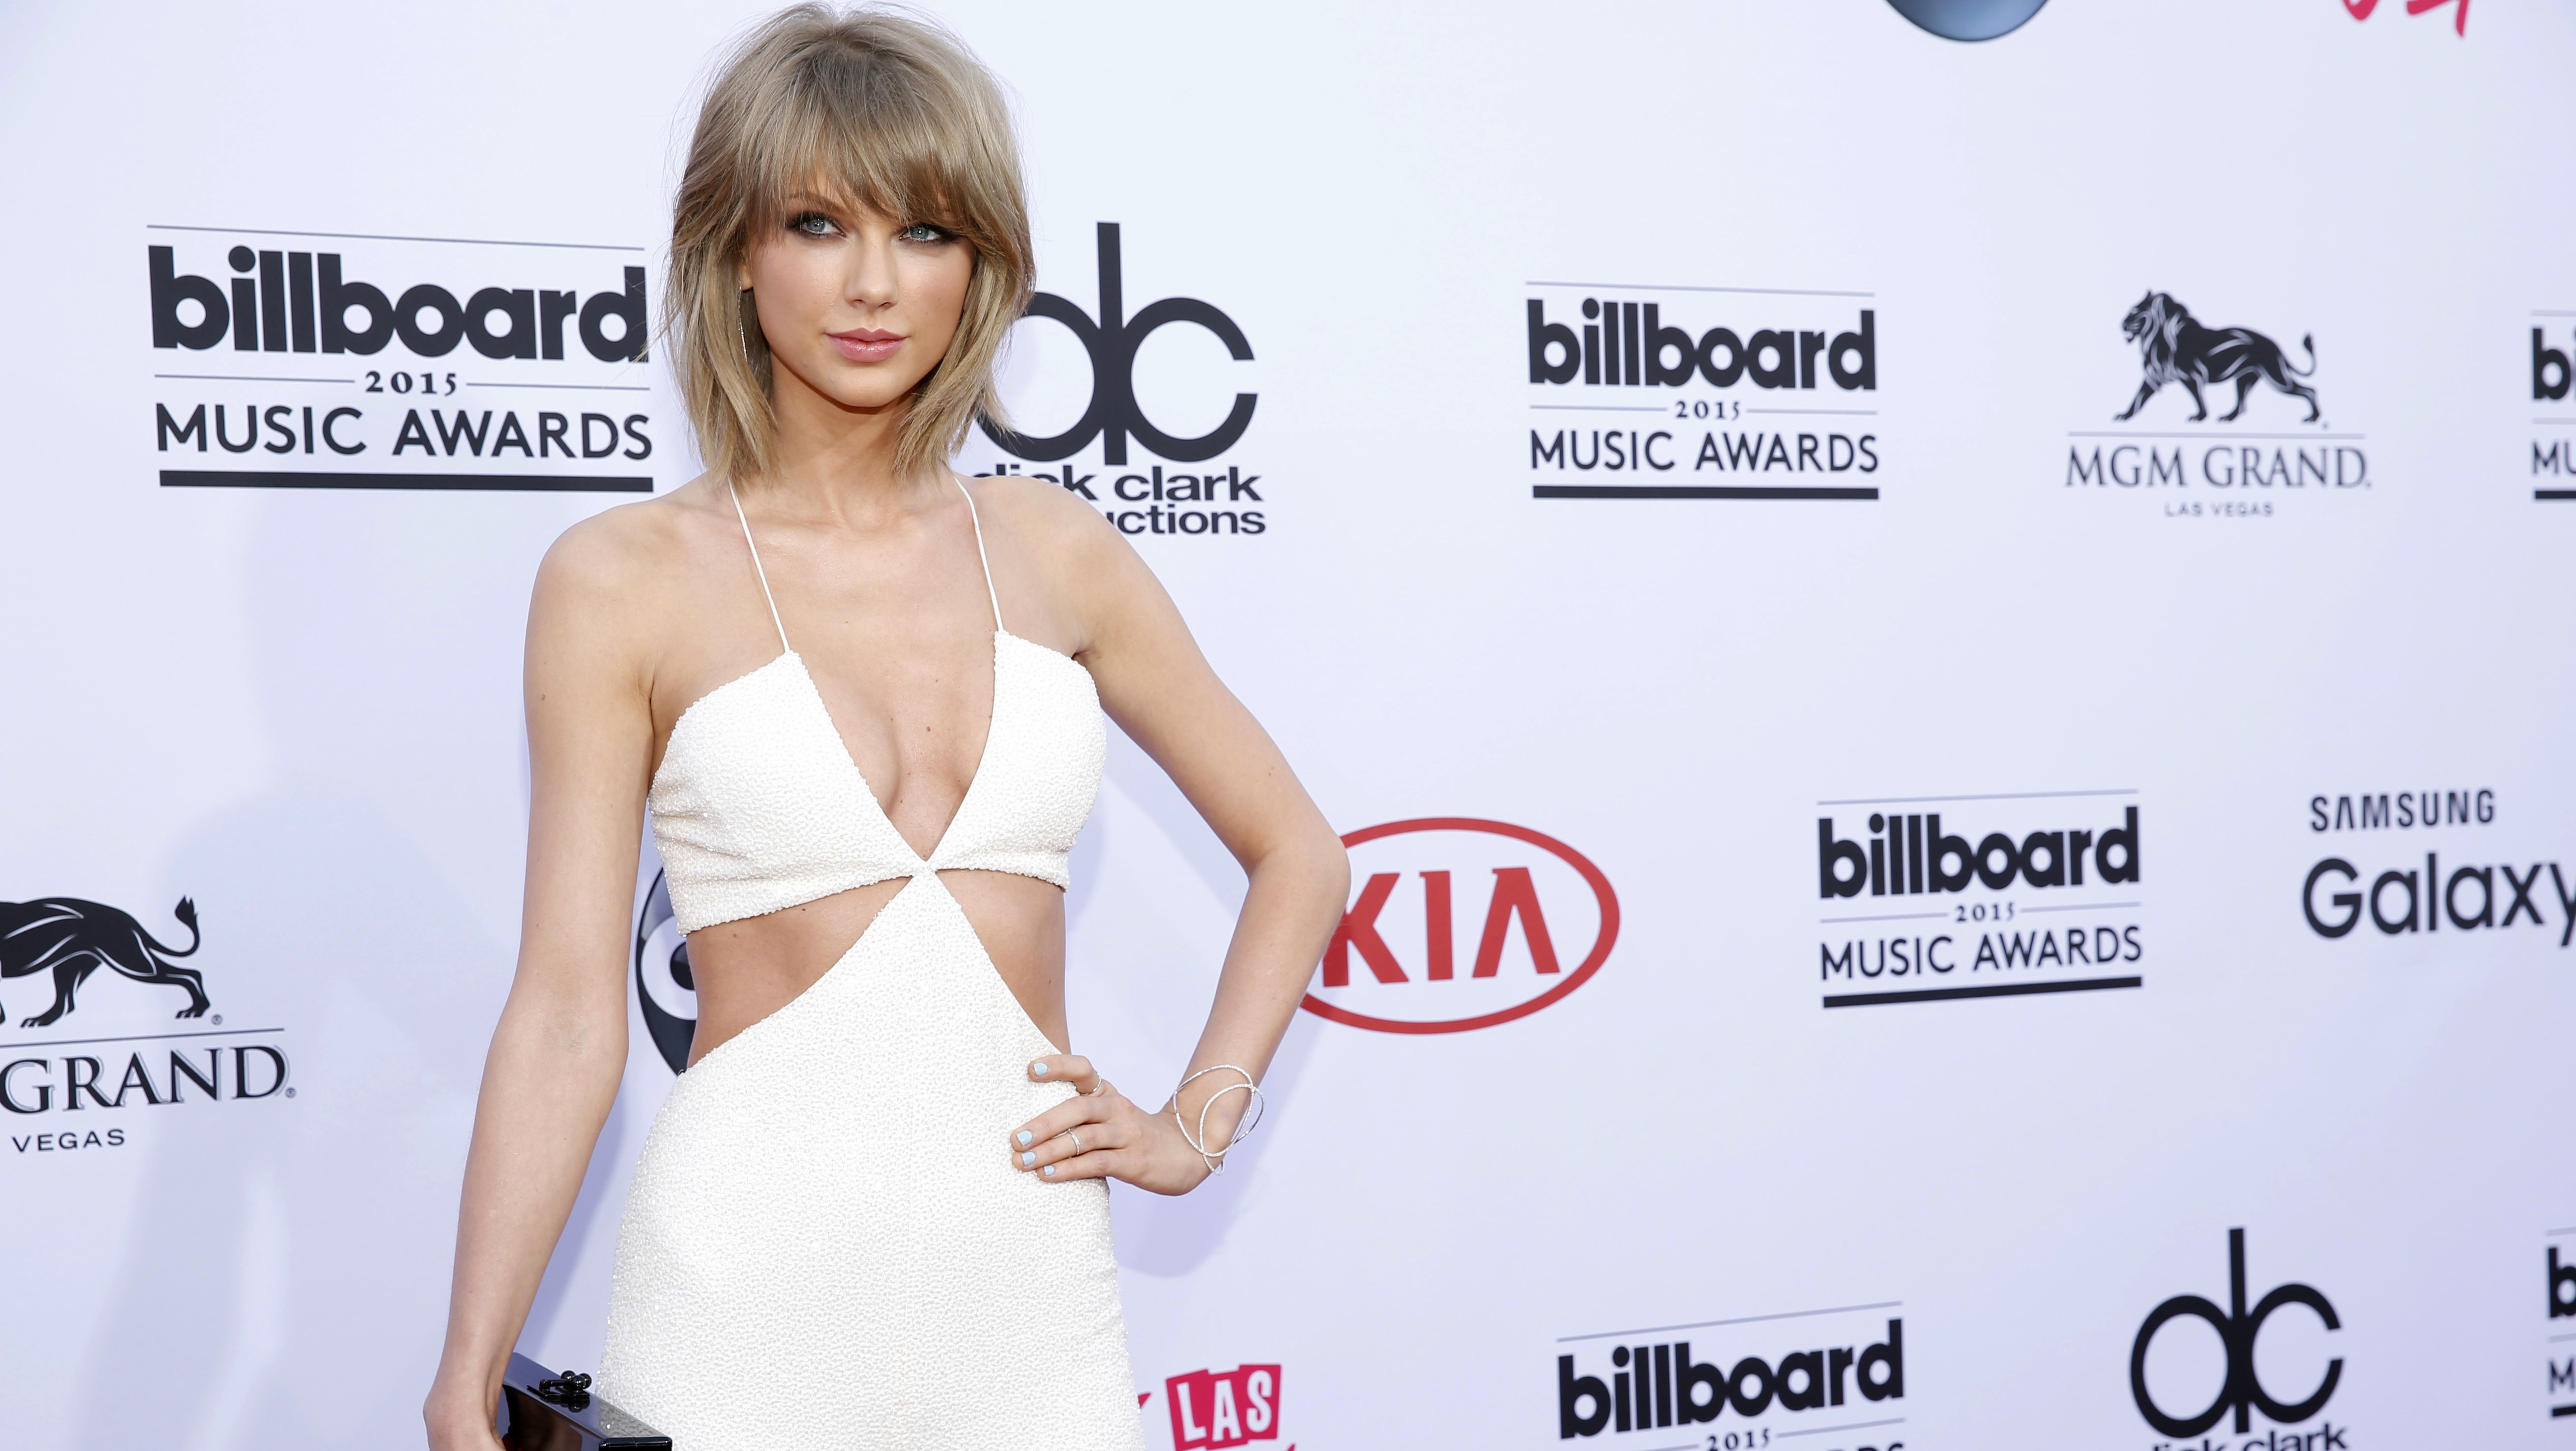 Taylor Swift S New Apparel Line Might Be Causing Controversy In China Hollywood Reporter